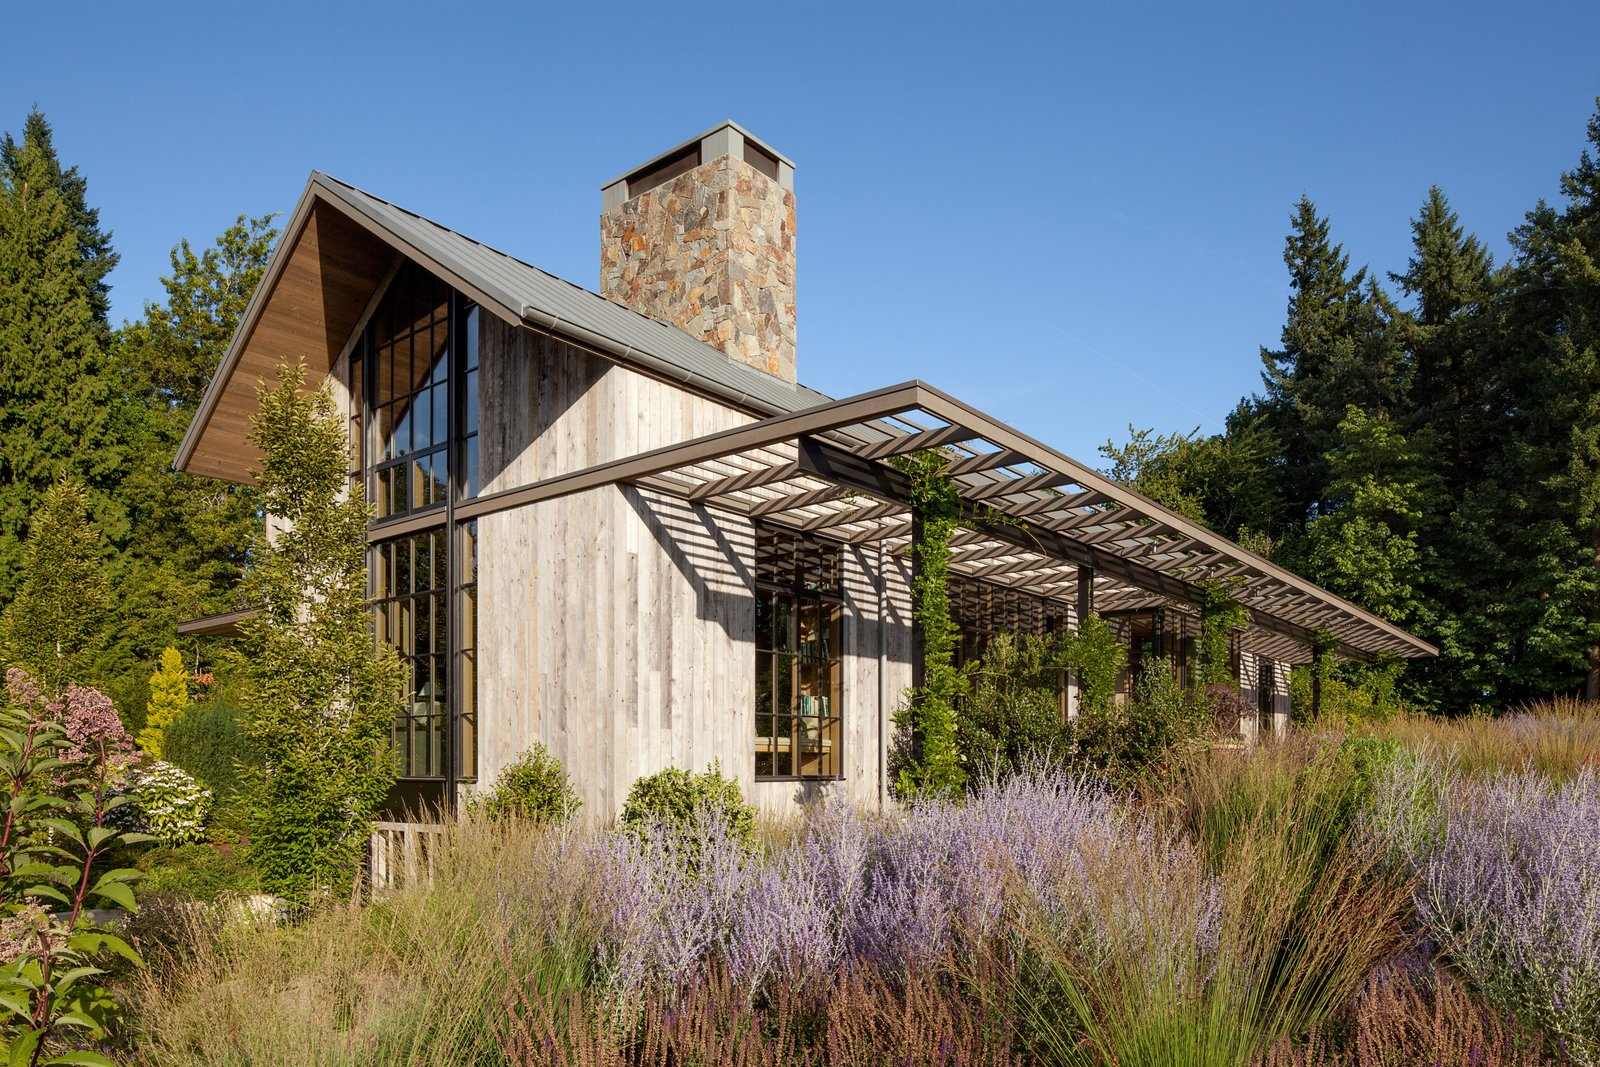 Exterior, House Building Type, and Wood Siding Material Country Garden House | Olson Kundig  Country Garden House by Olson Kundig